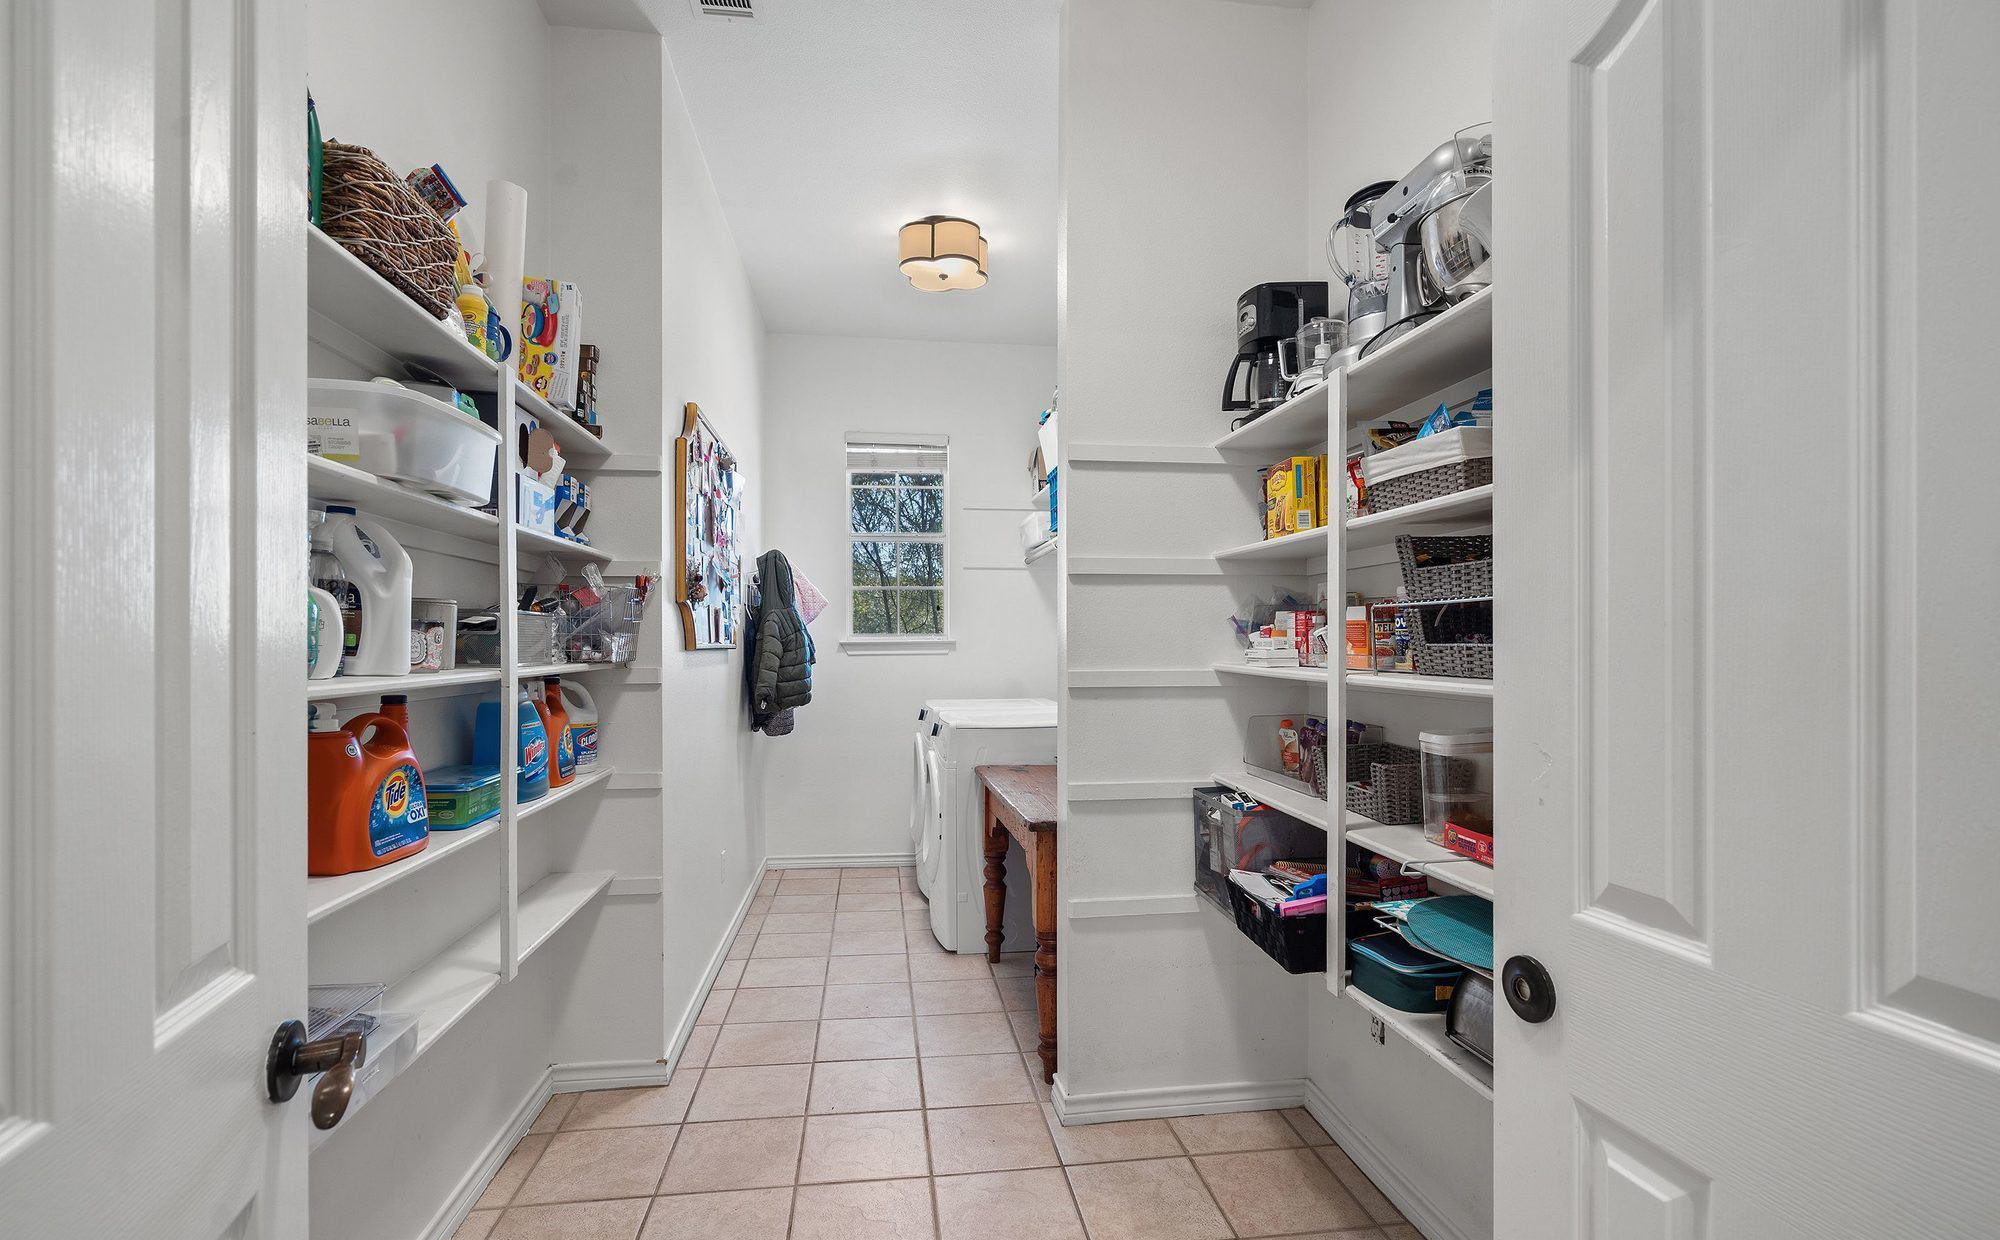 Laundry room with lots of open shelving.